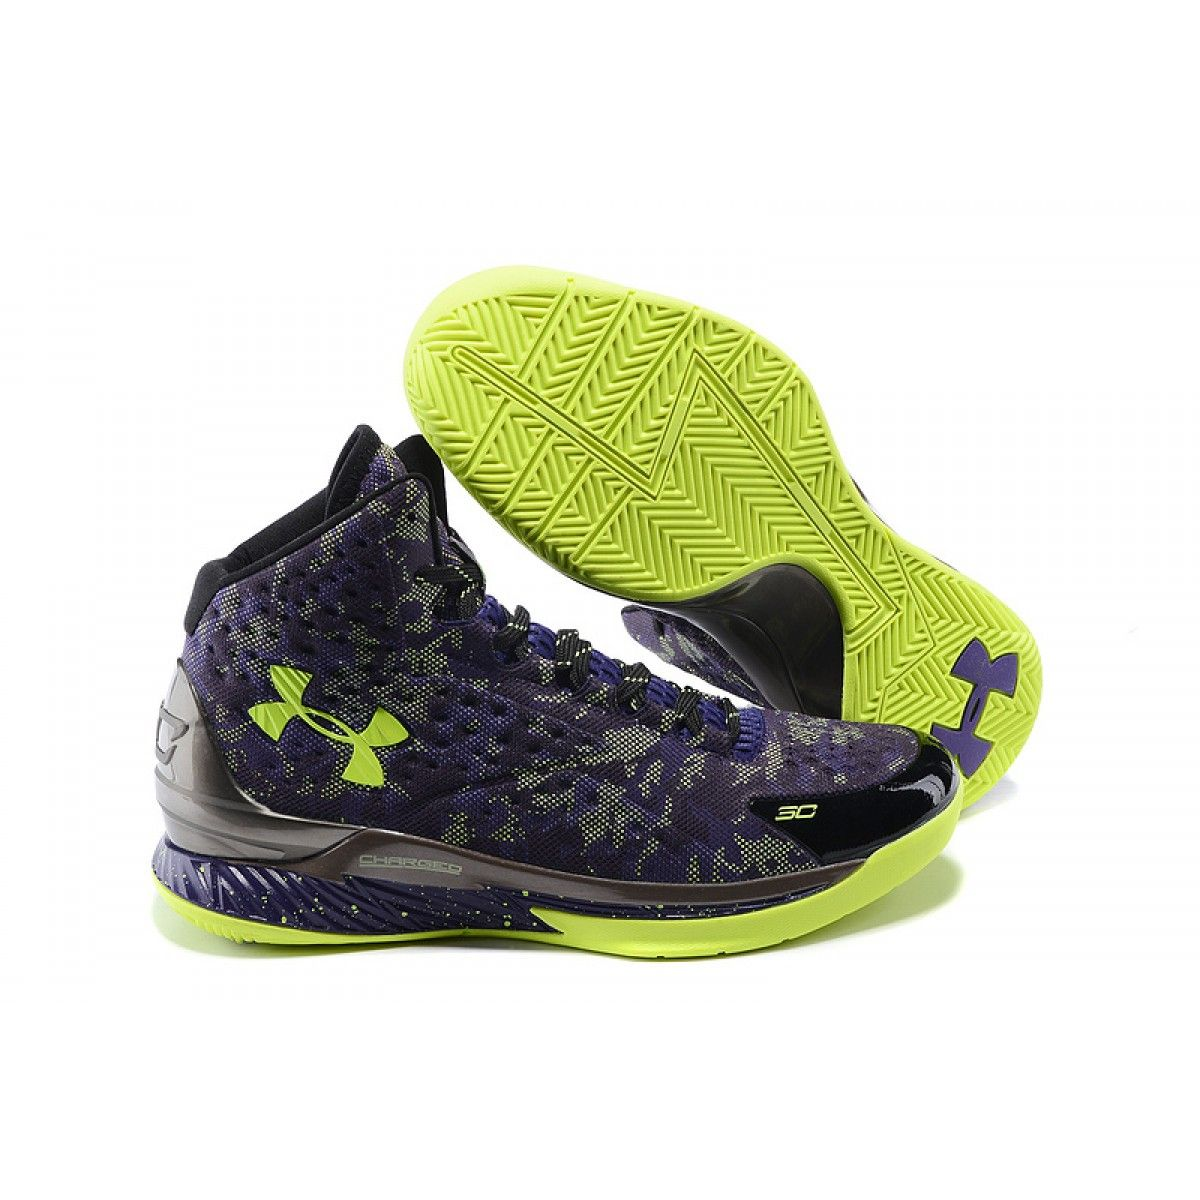 Buy Under Armour UA Curry One All Star Dark Matter Purple/Yellow from  Reliable Under Armour UA Curry One All Star Dark Matter Purple/Yellow  suppliers.